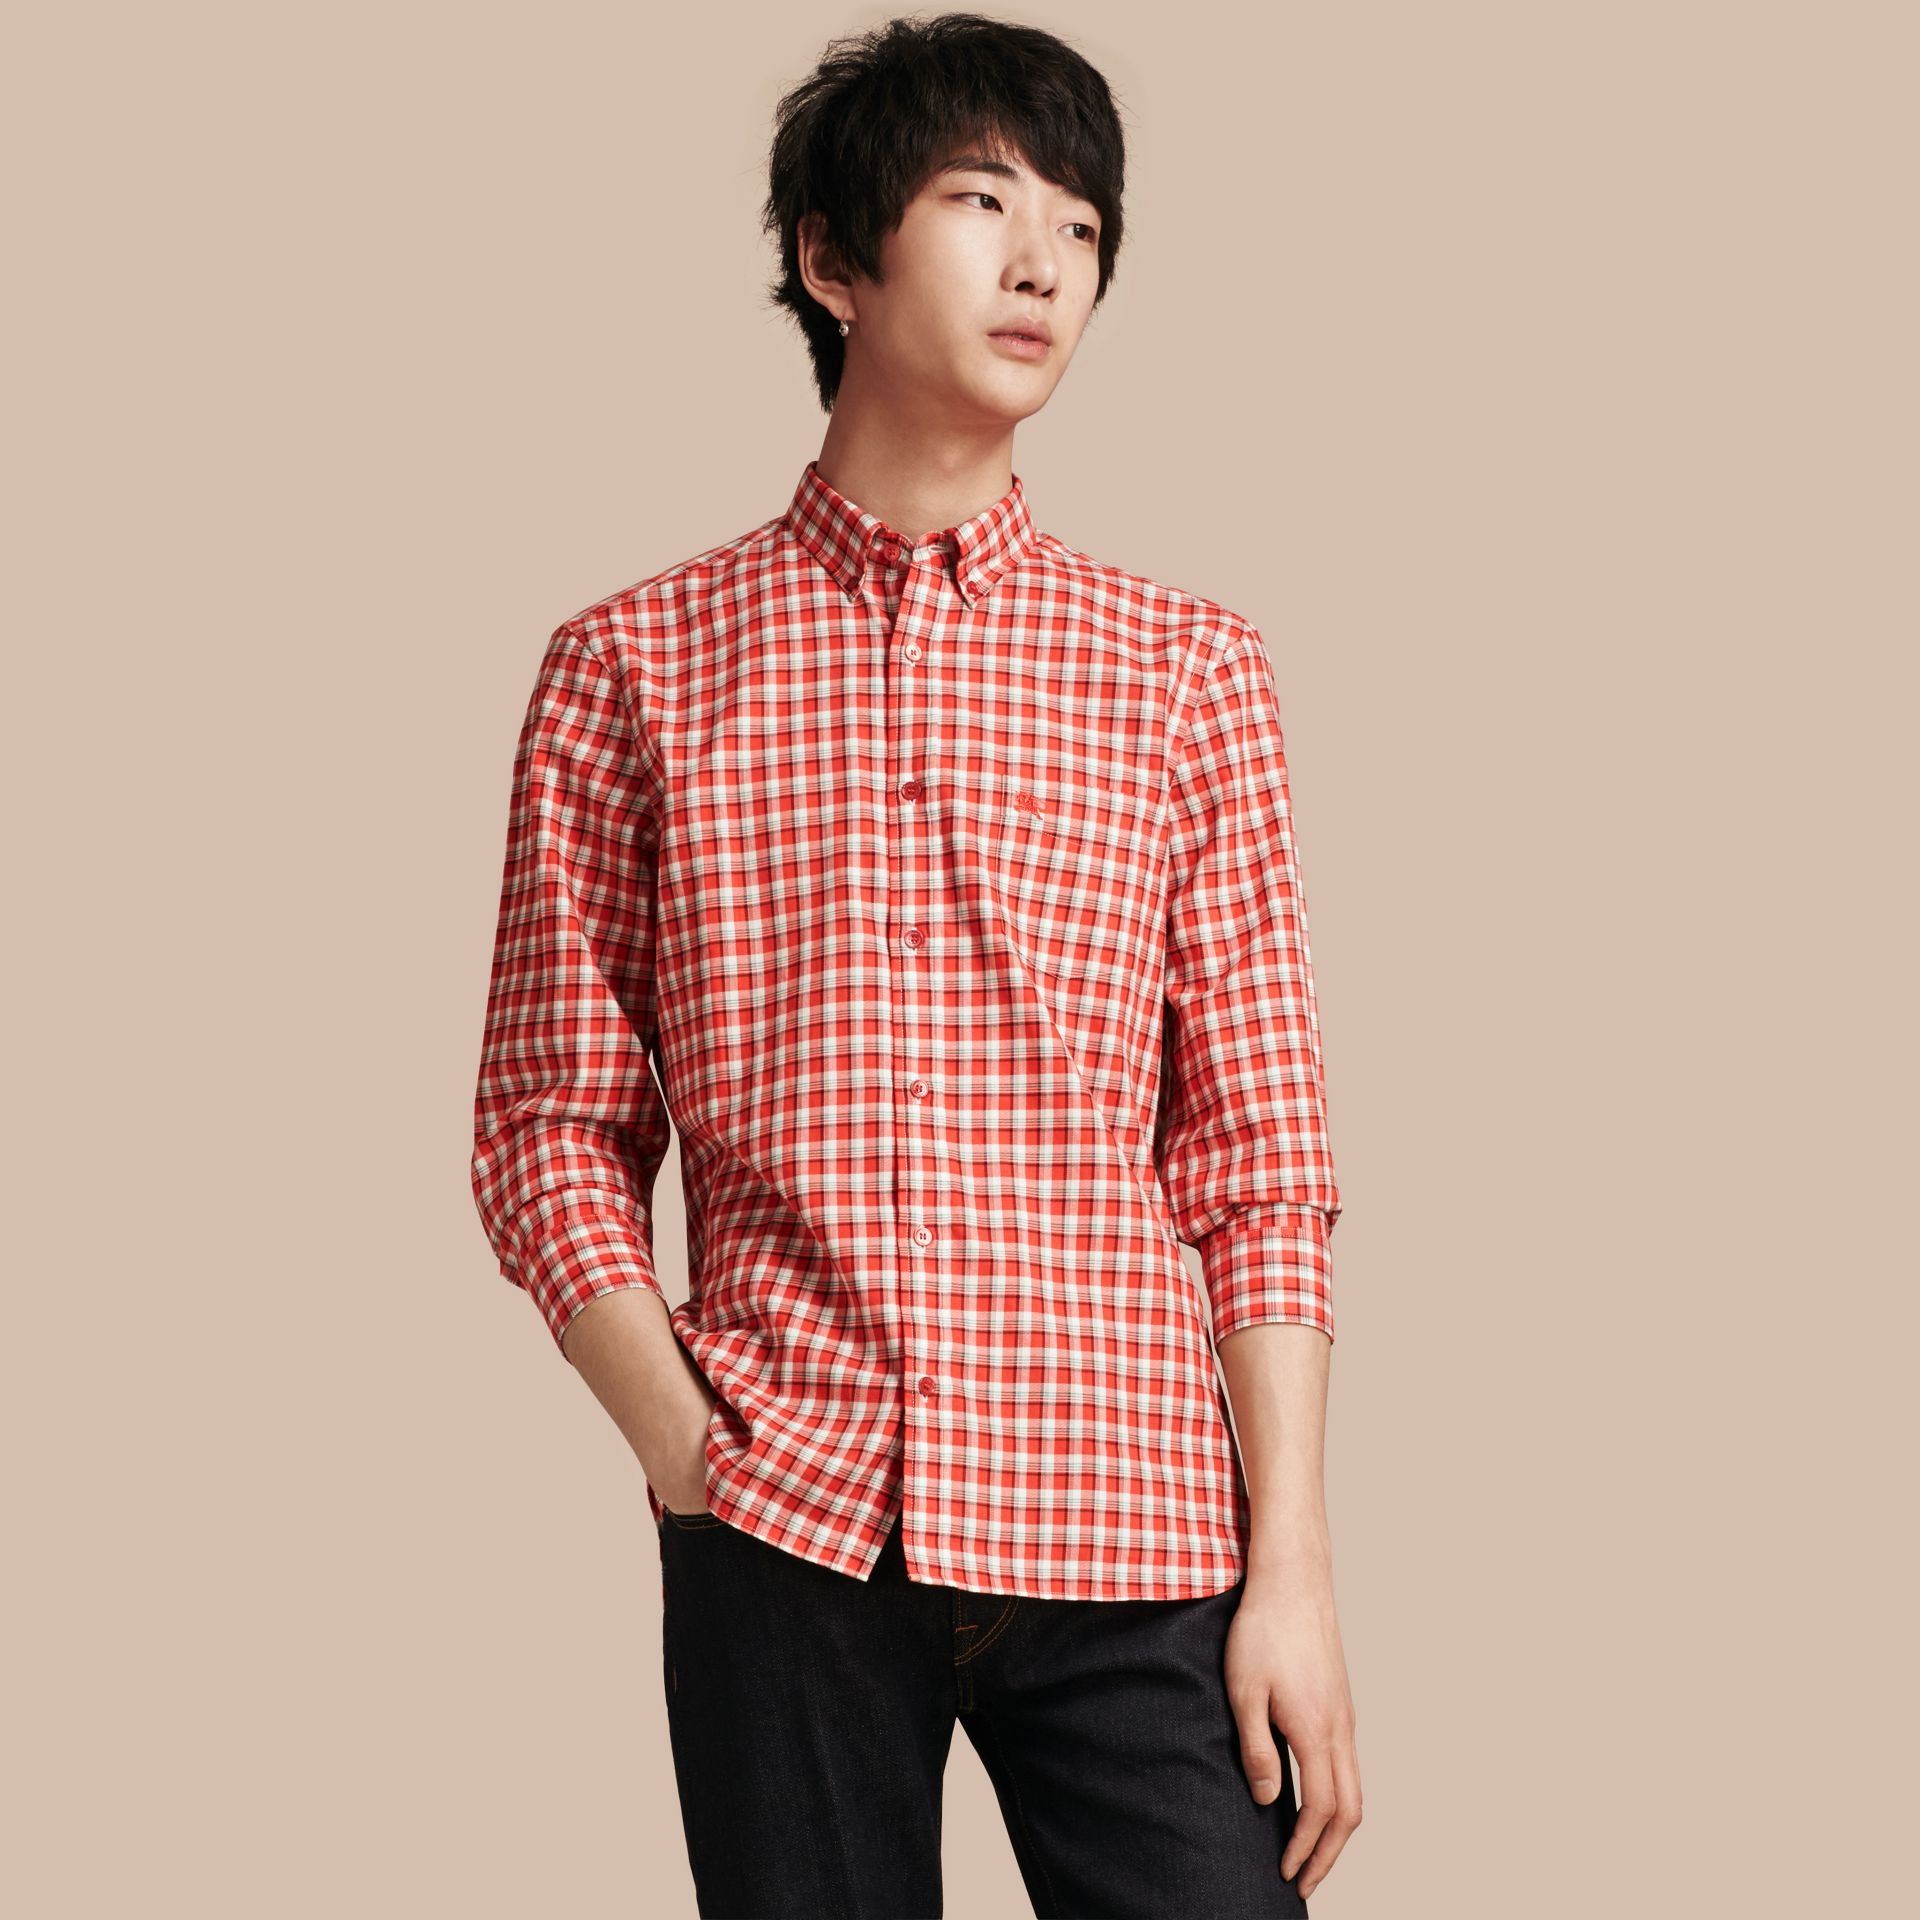 Parade red Gingham Check Cotton Twill Shirt Parade Red - gallery image 1